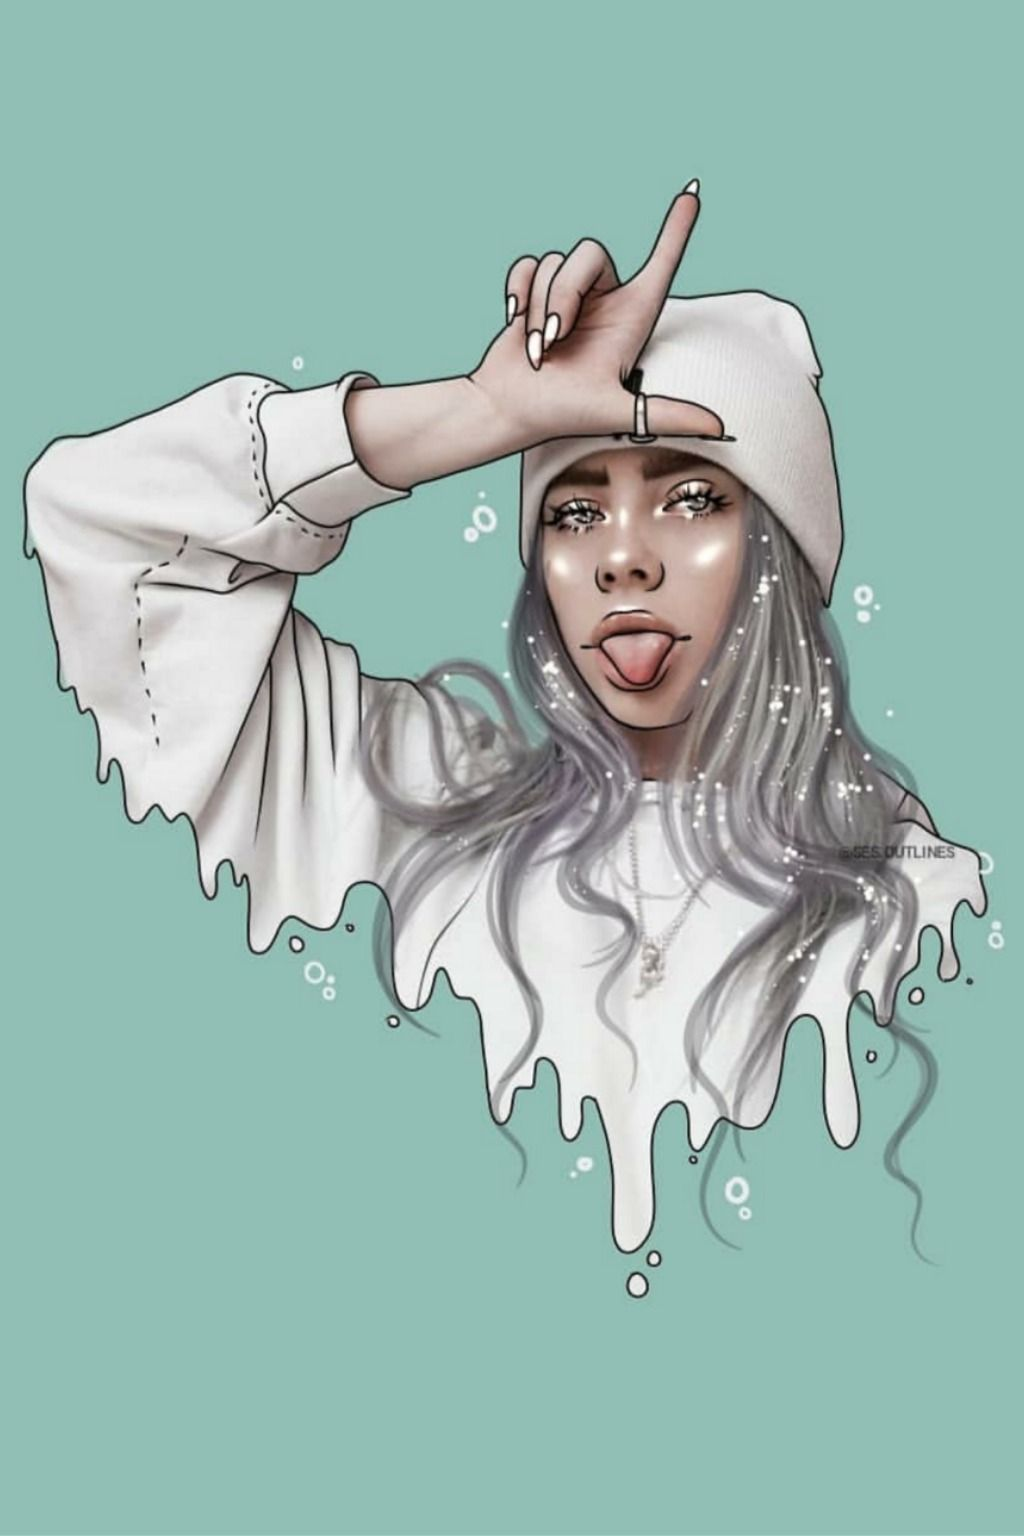 10 Ways To Use Stickers To Flood Your Socials With Billie Eilish Fan Art - Create + Discover with PicsArt